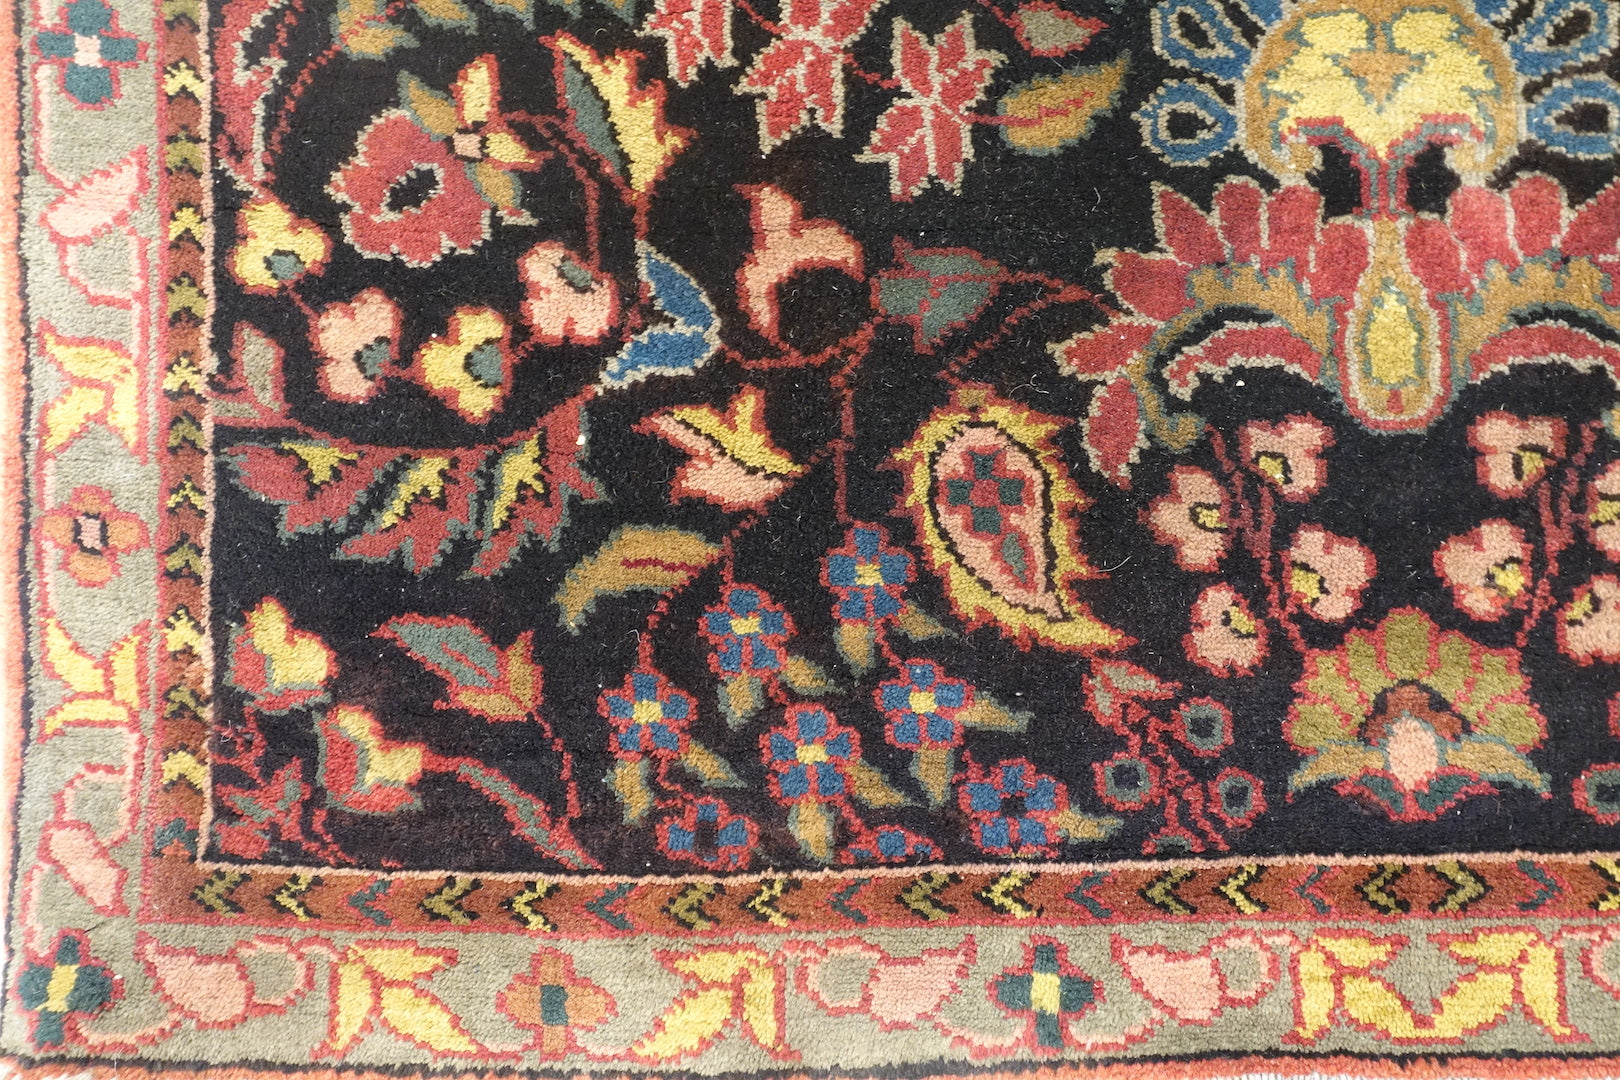 It is a 4 feet by 6 feet indian wool rug. The colours used in the rug are blue,red,beige and pink.